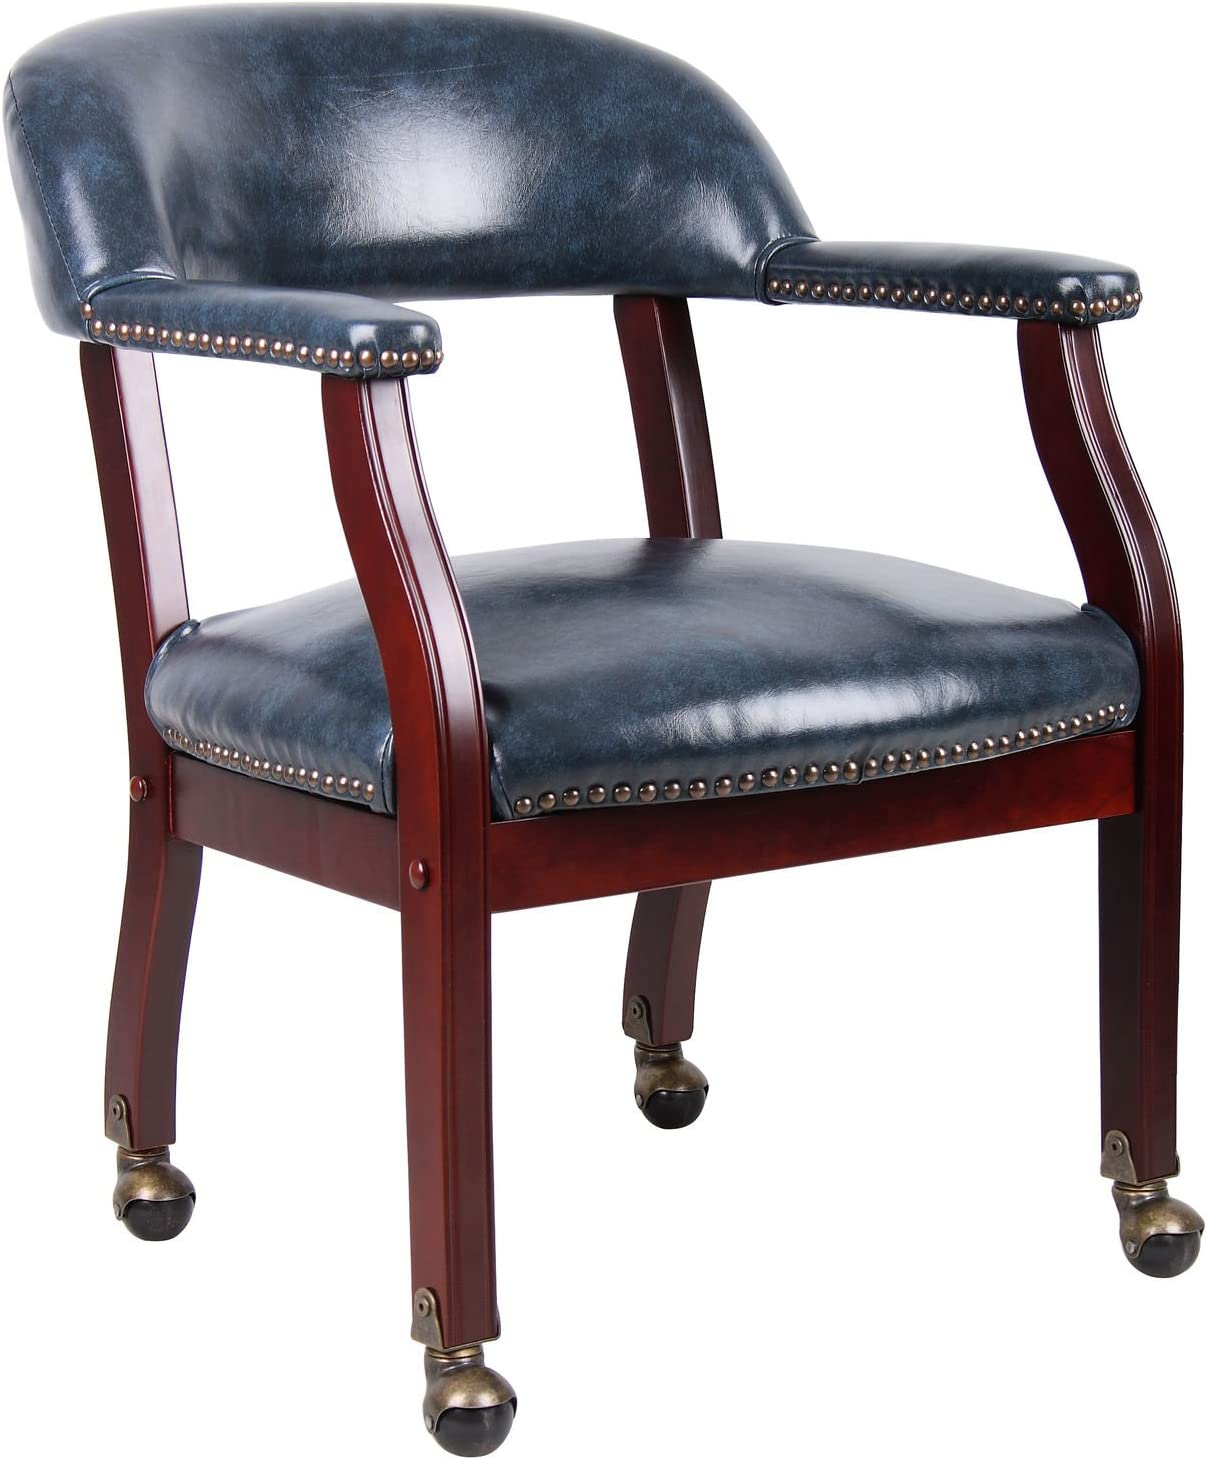 Boss Captain's Chair in Max 77% OFF W Blue Vinyl Casters New arrival